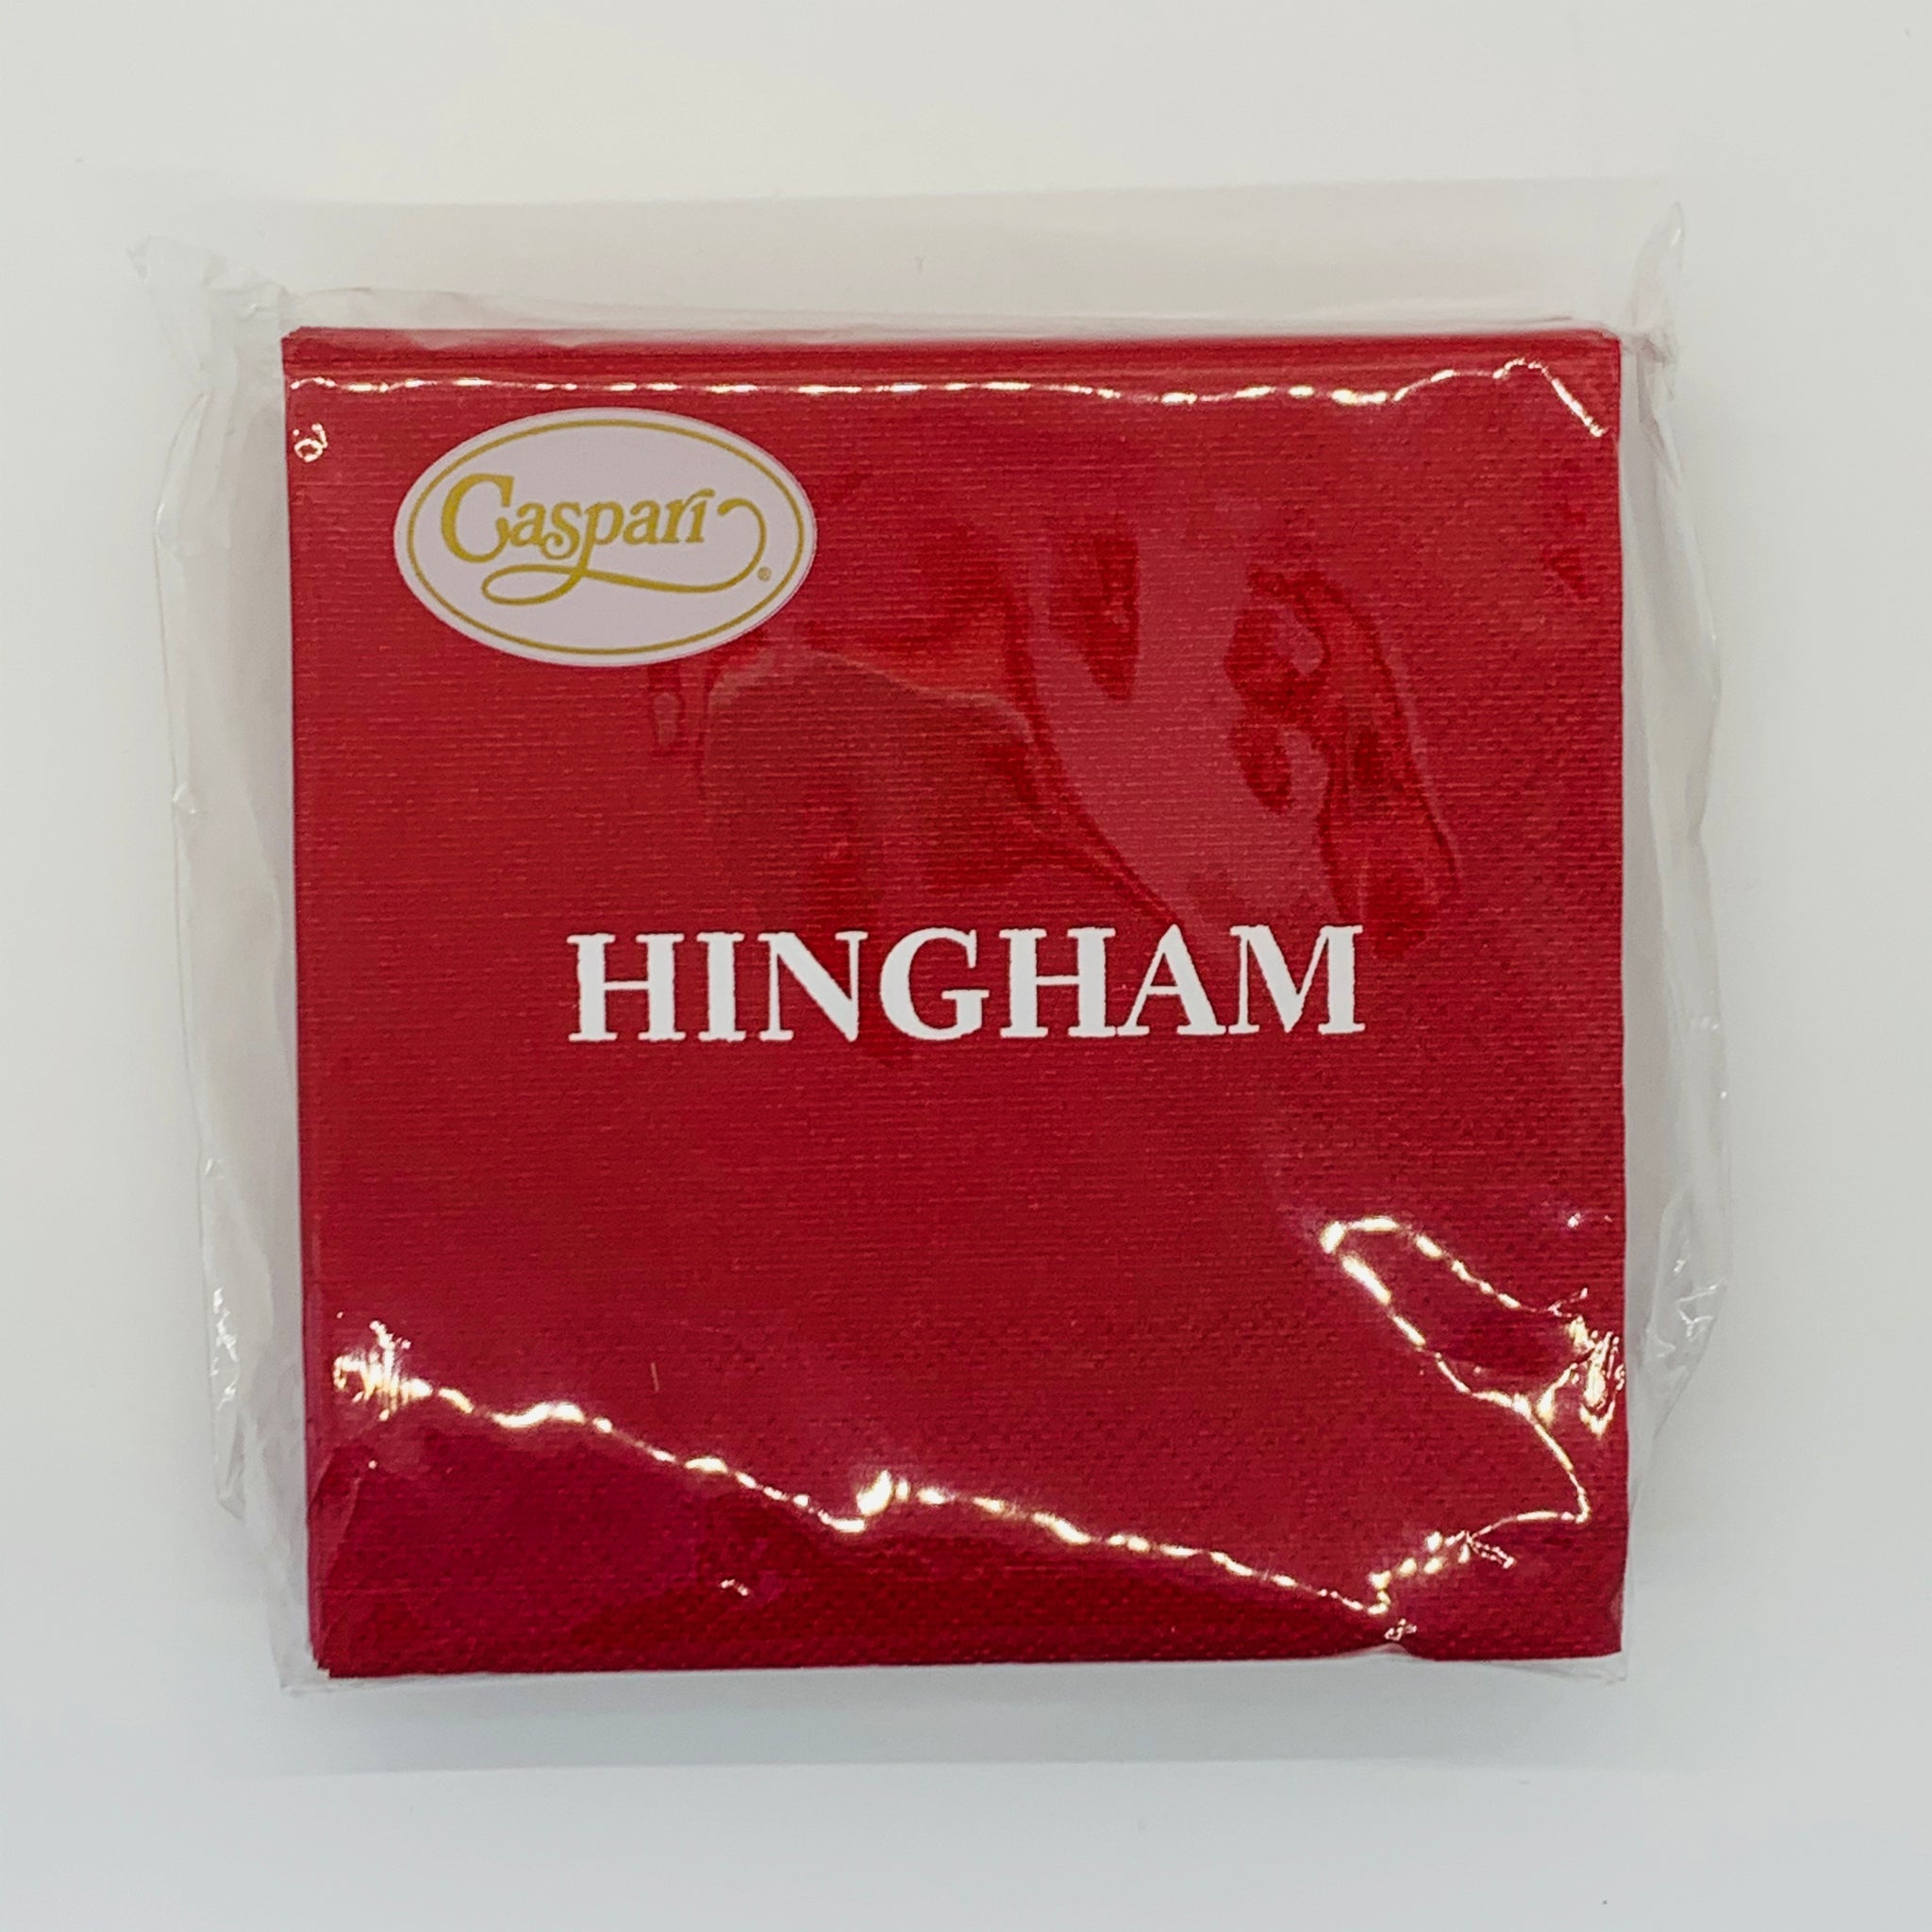 Hingham Cocktail Napkin